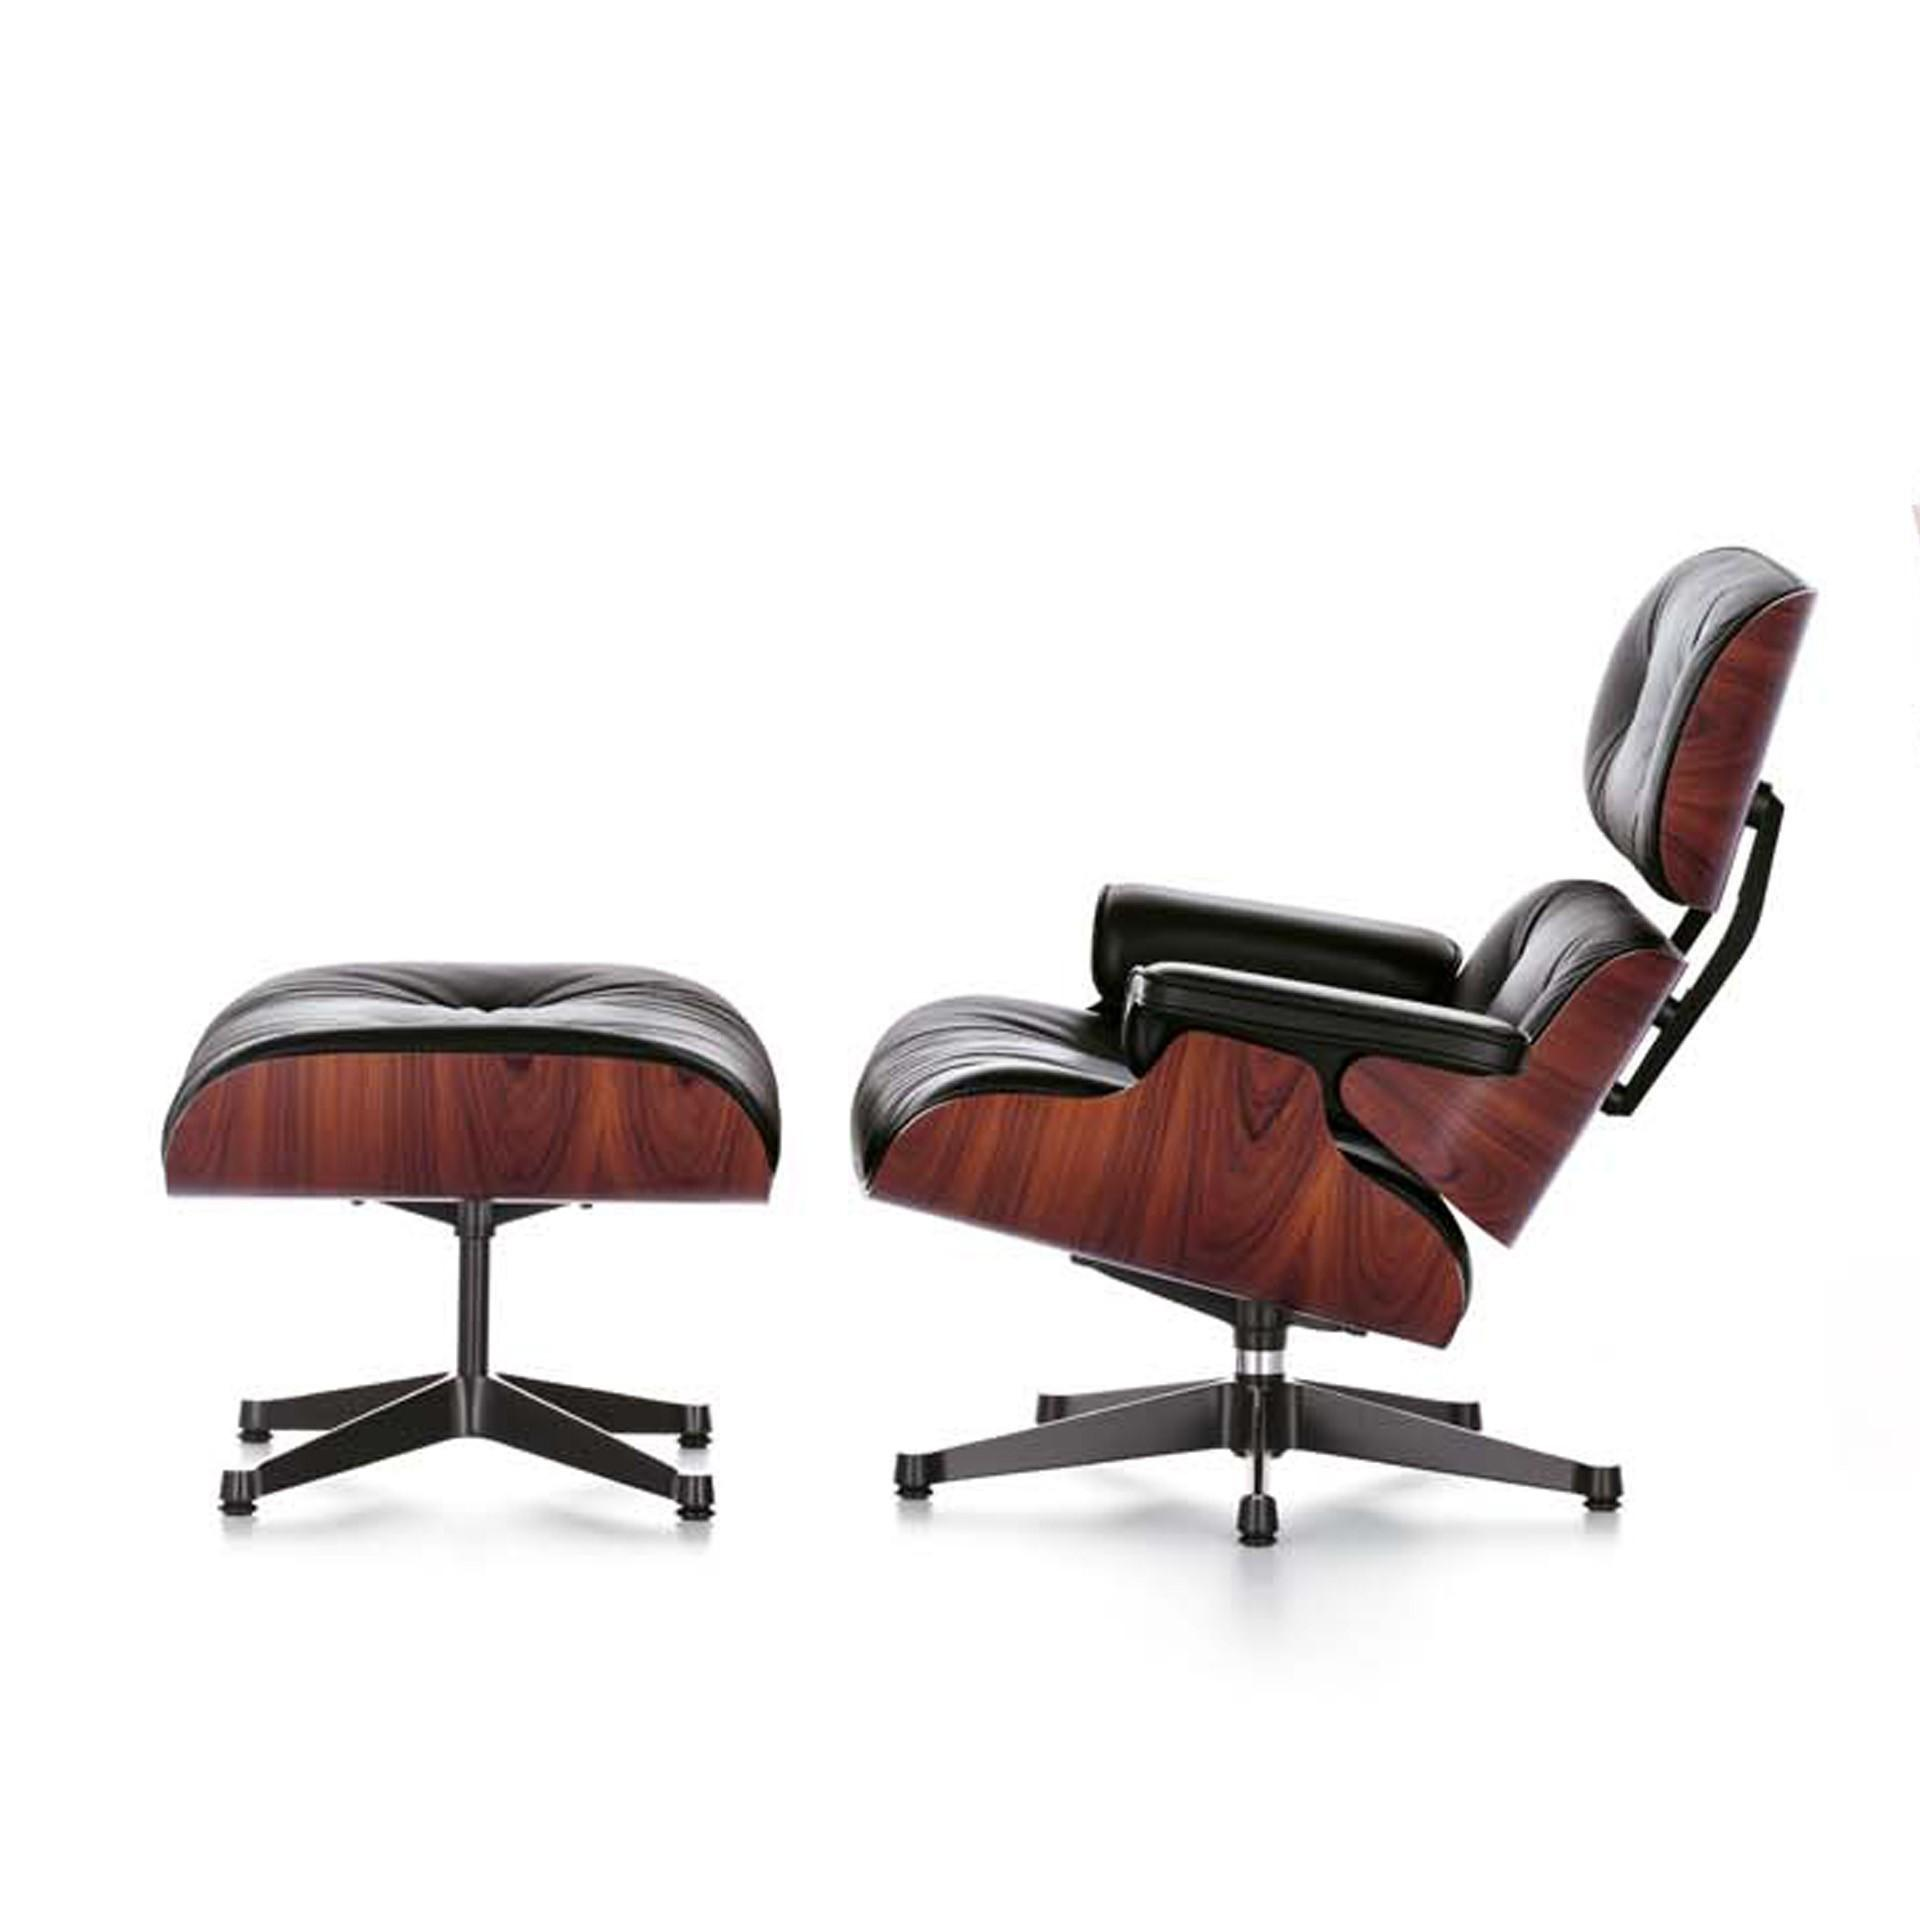 Vitra Eames Lounge Chair Ottoman Charle Ray